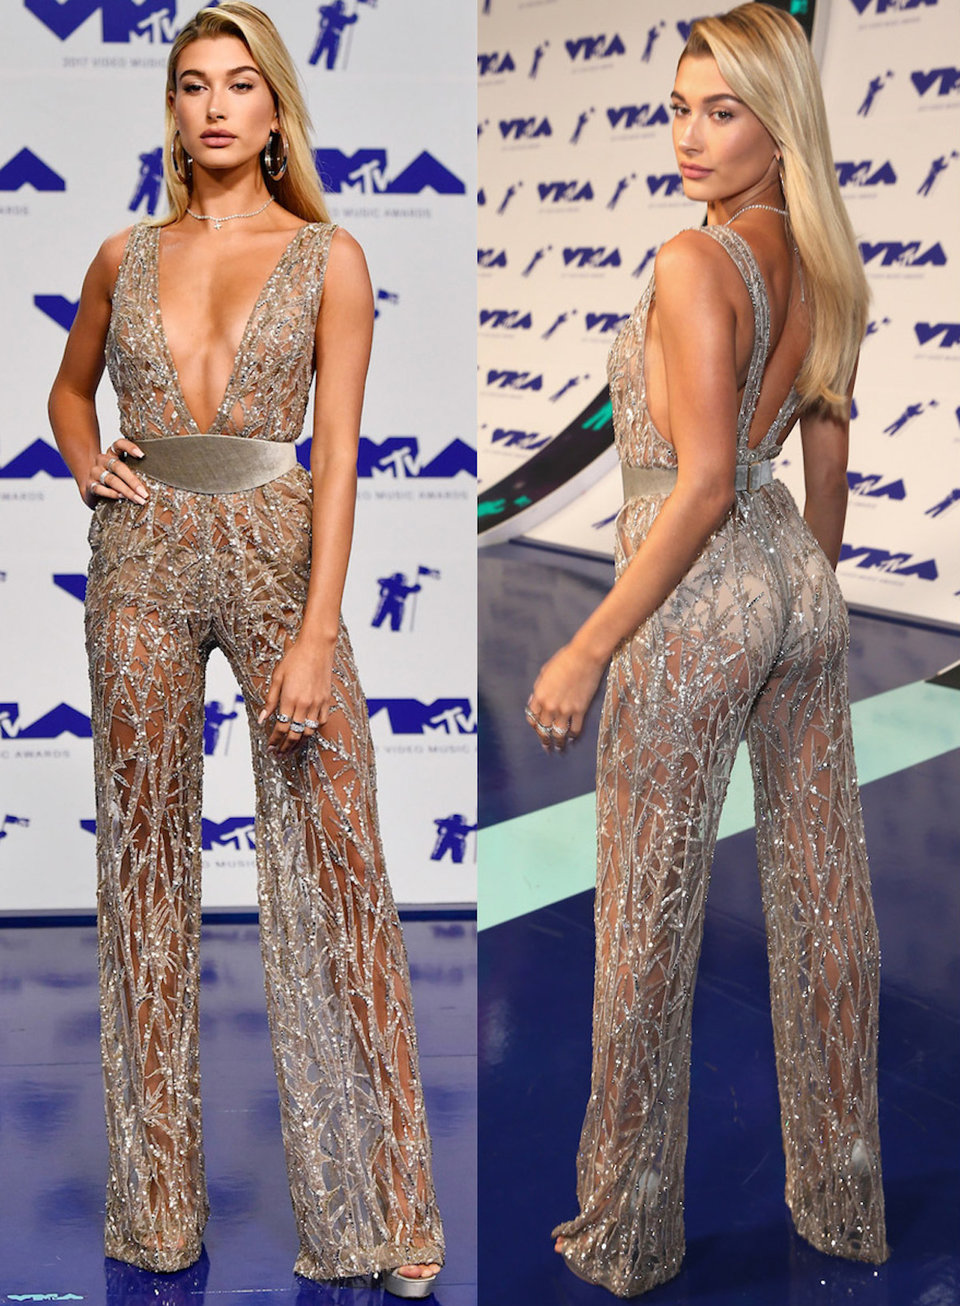 hailey baldwin wore a silver jumpsuit in a super thin material with a low v neck and wide velvet belt to the vmas in 2017